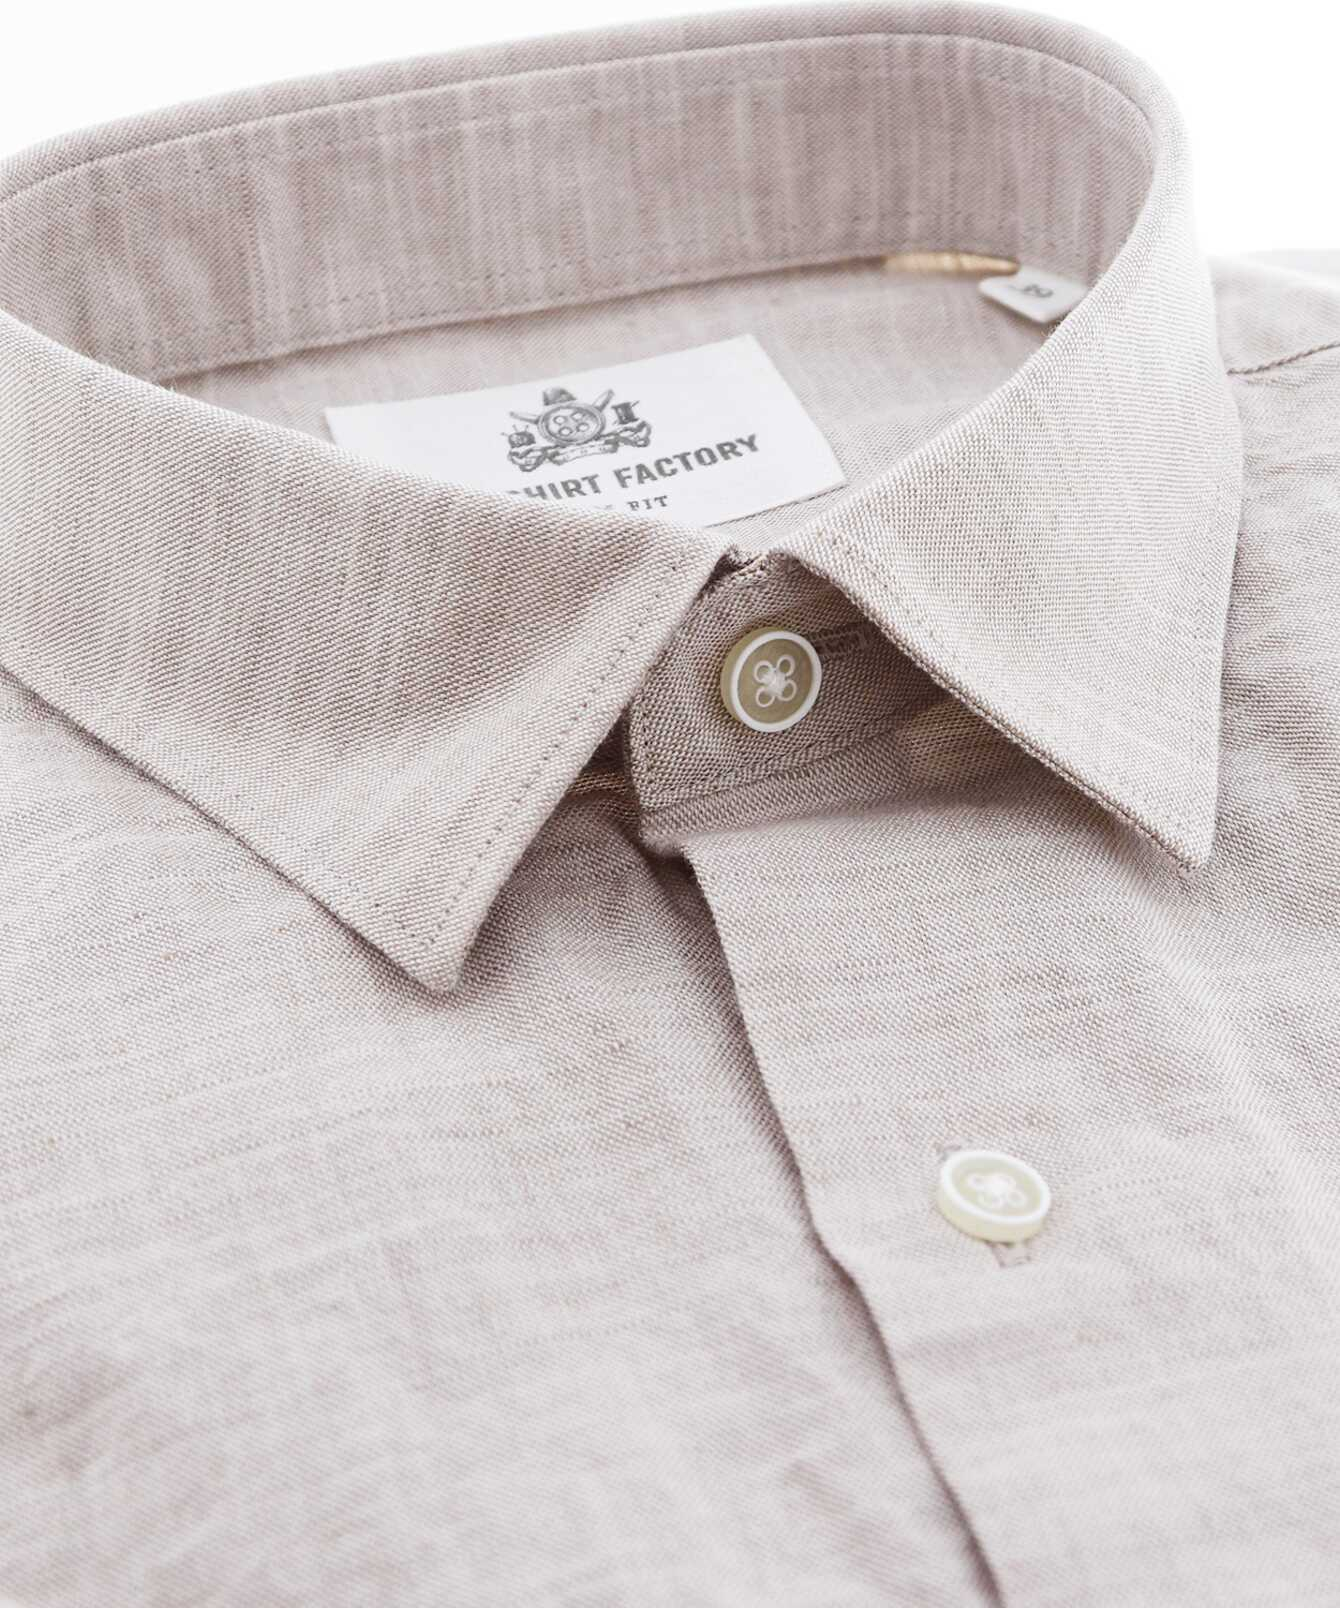 Shirt Portofino Linne Beige The Shirt Factory